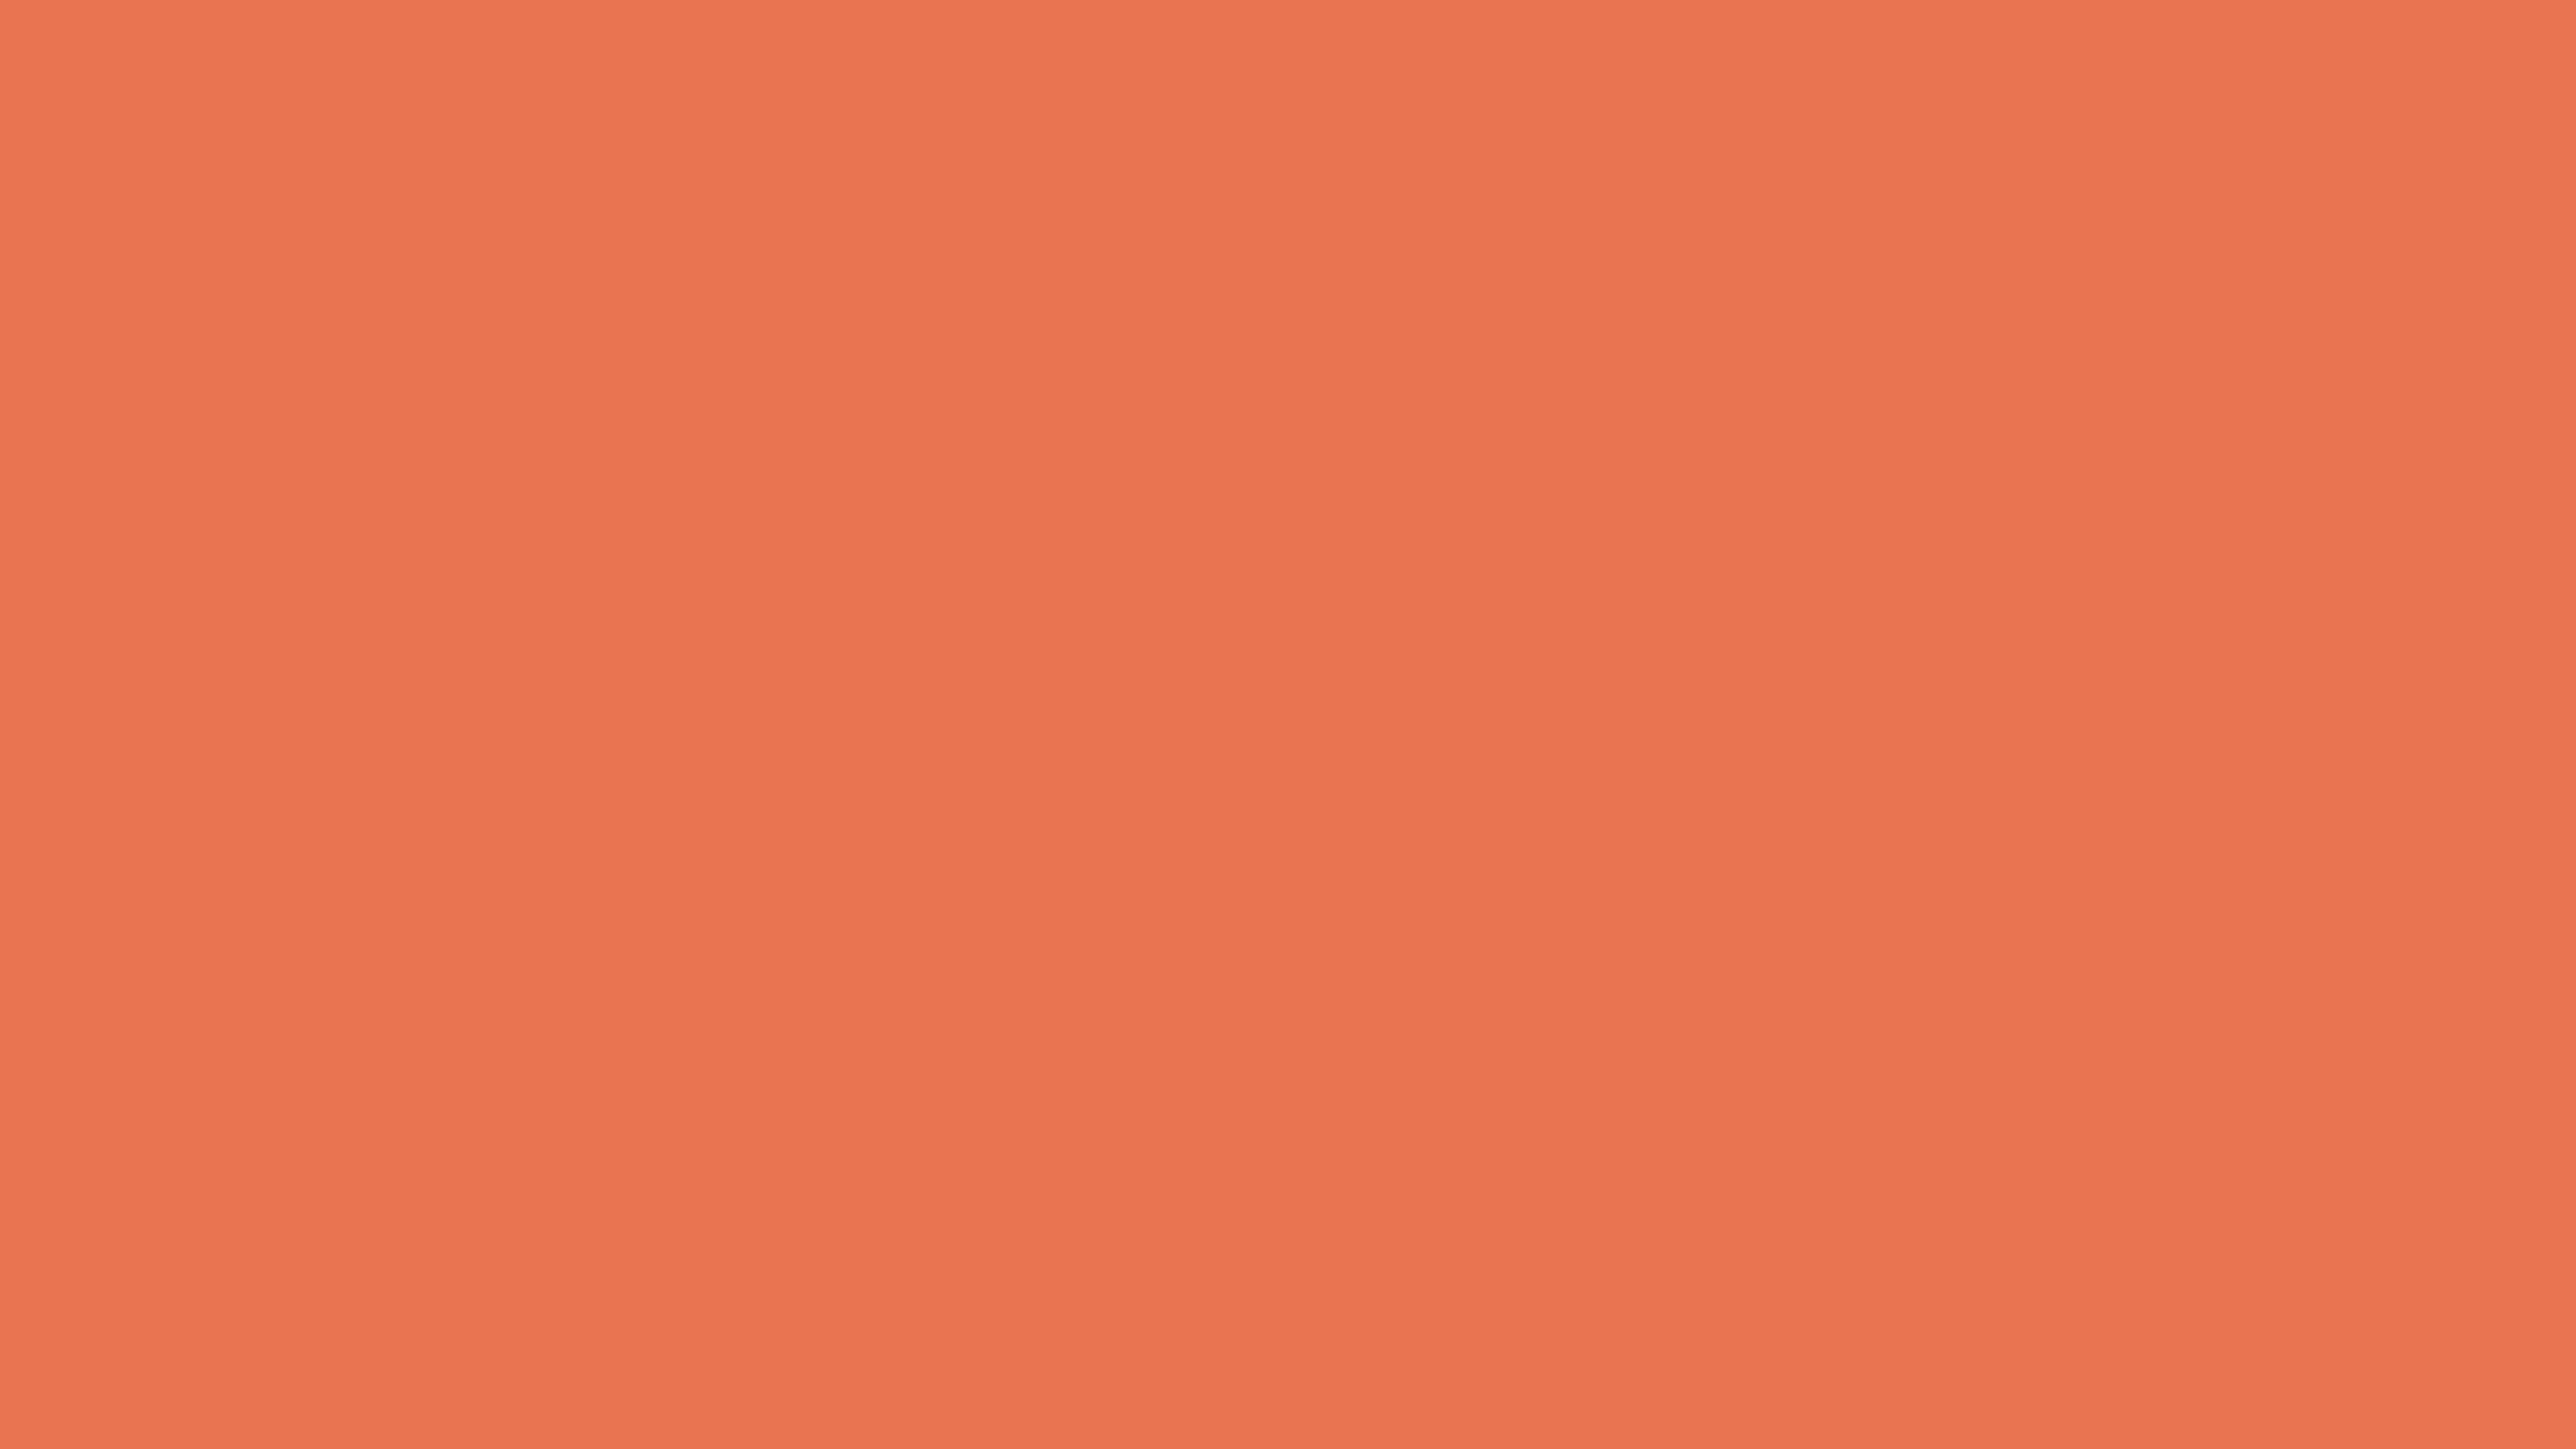 3840x2160 Burnt Sienna Solid Color Background